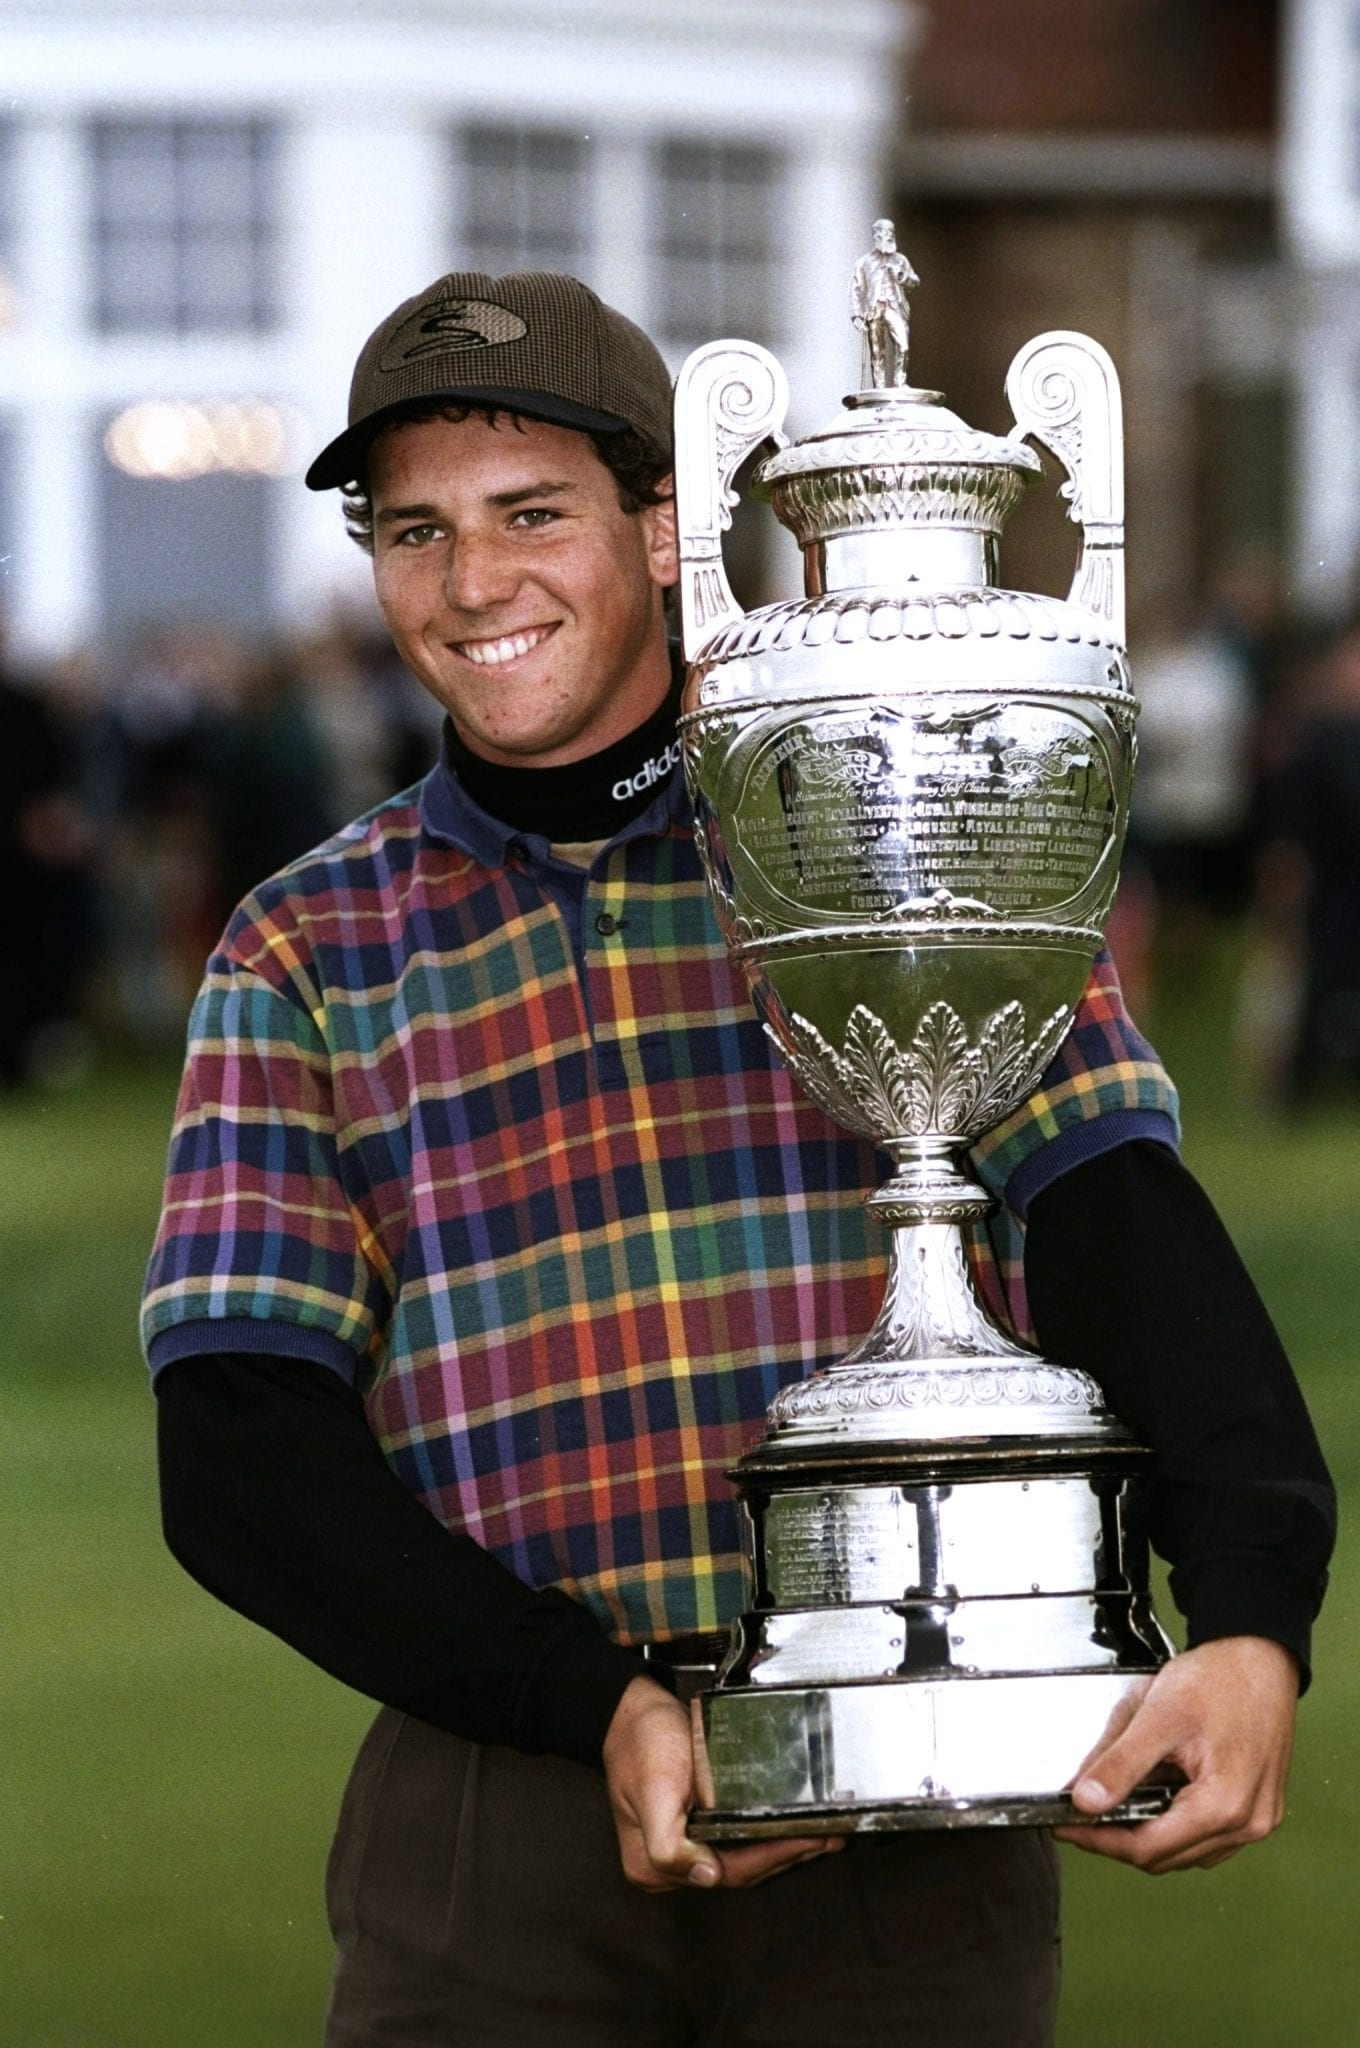 6 Jun 1988: Sergio Garcia of Spain holds the trophy after his victory in the British Amateur Championship at Muirfield Golf Club in Scotland. Mandatory Credit: Andrew Redington/Allsport